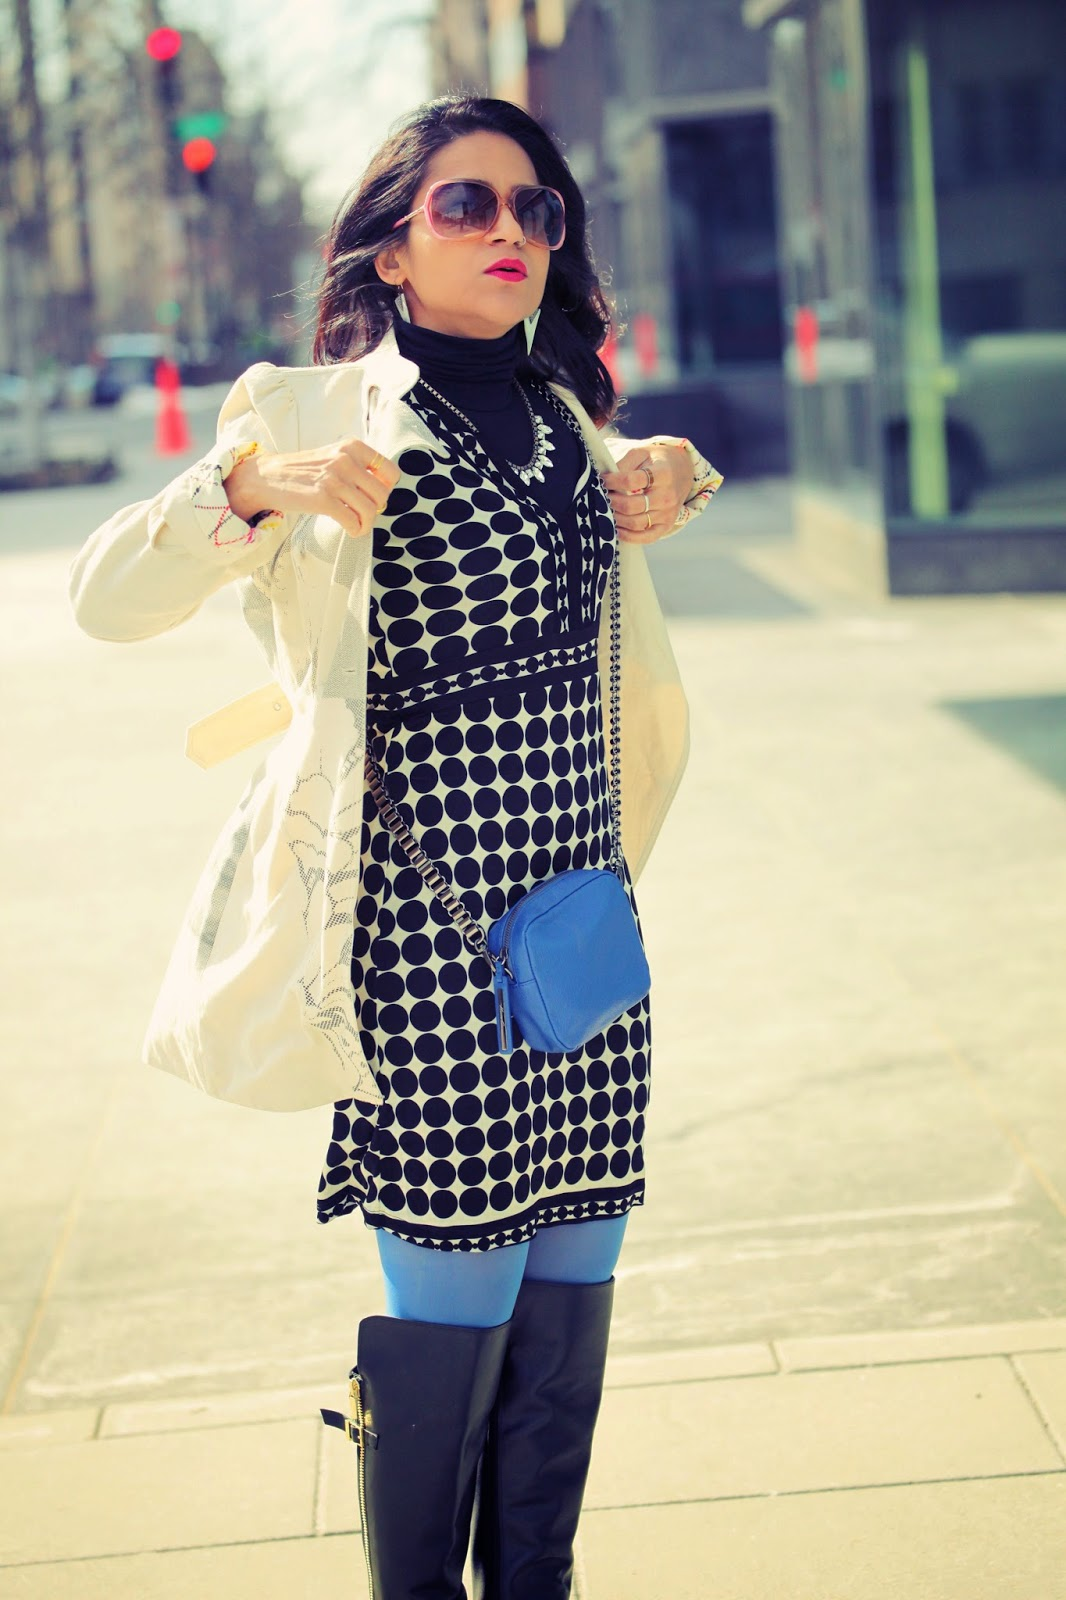 Polka Dot Dress, Knee High Boots, Spring Jacket, Cross body bag, Tanvii.com